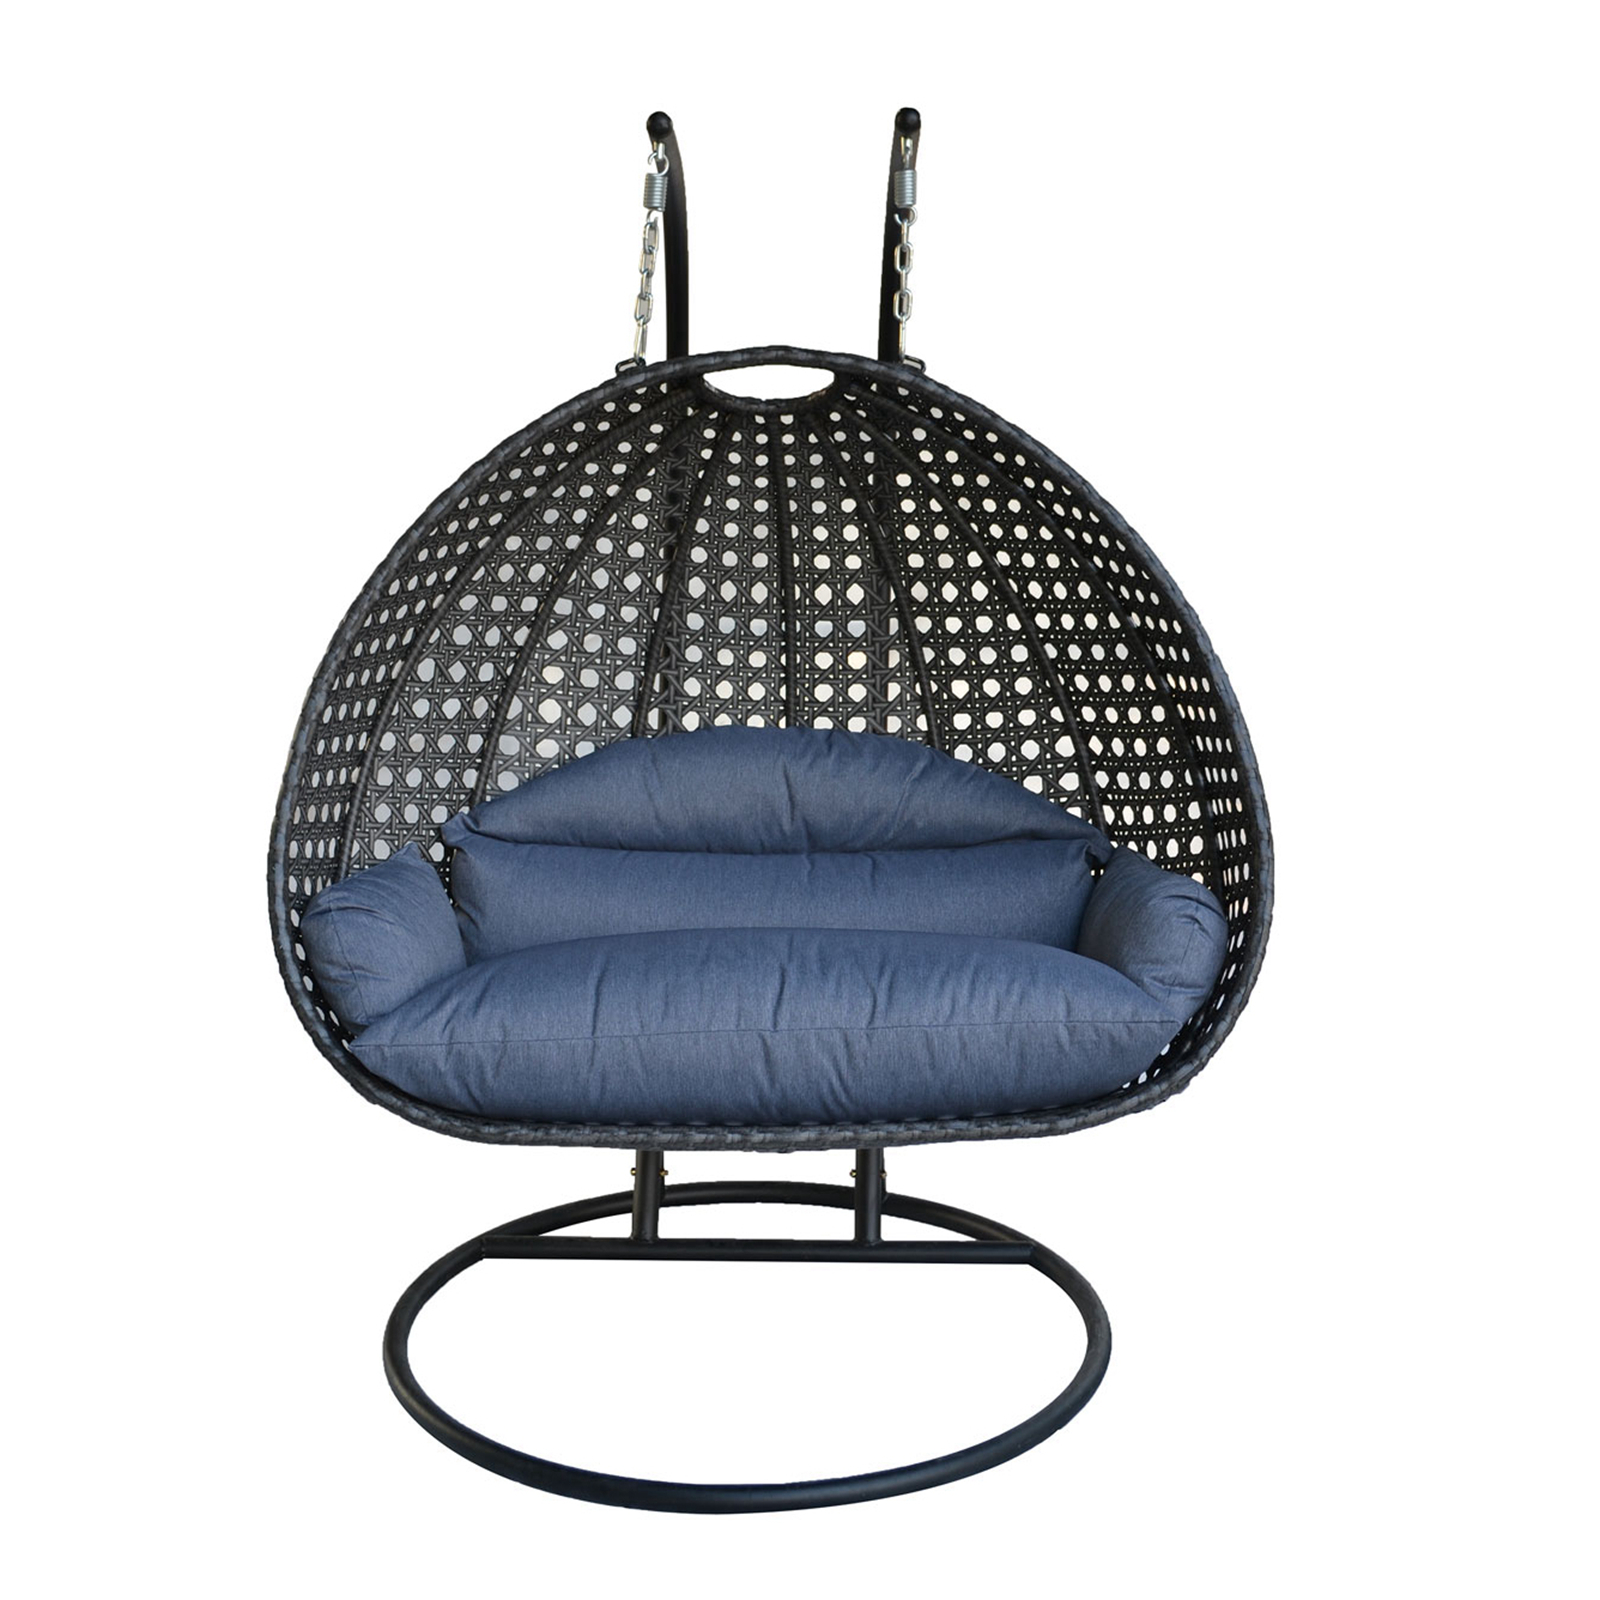 heavy duty 2 person wicker chair swing hammock rattan. Black Bedroom Furniture Sets. Home Design Ideas